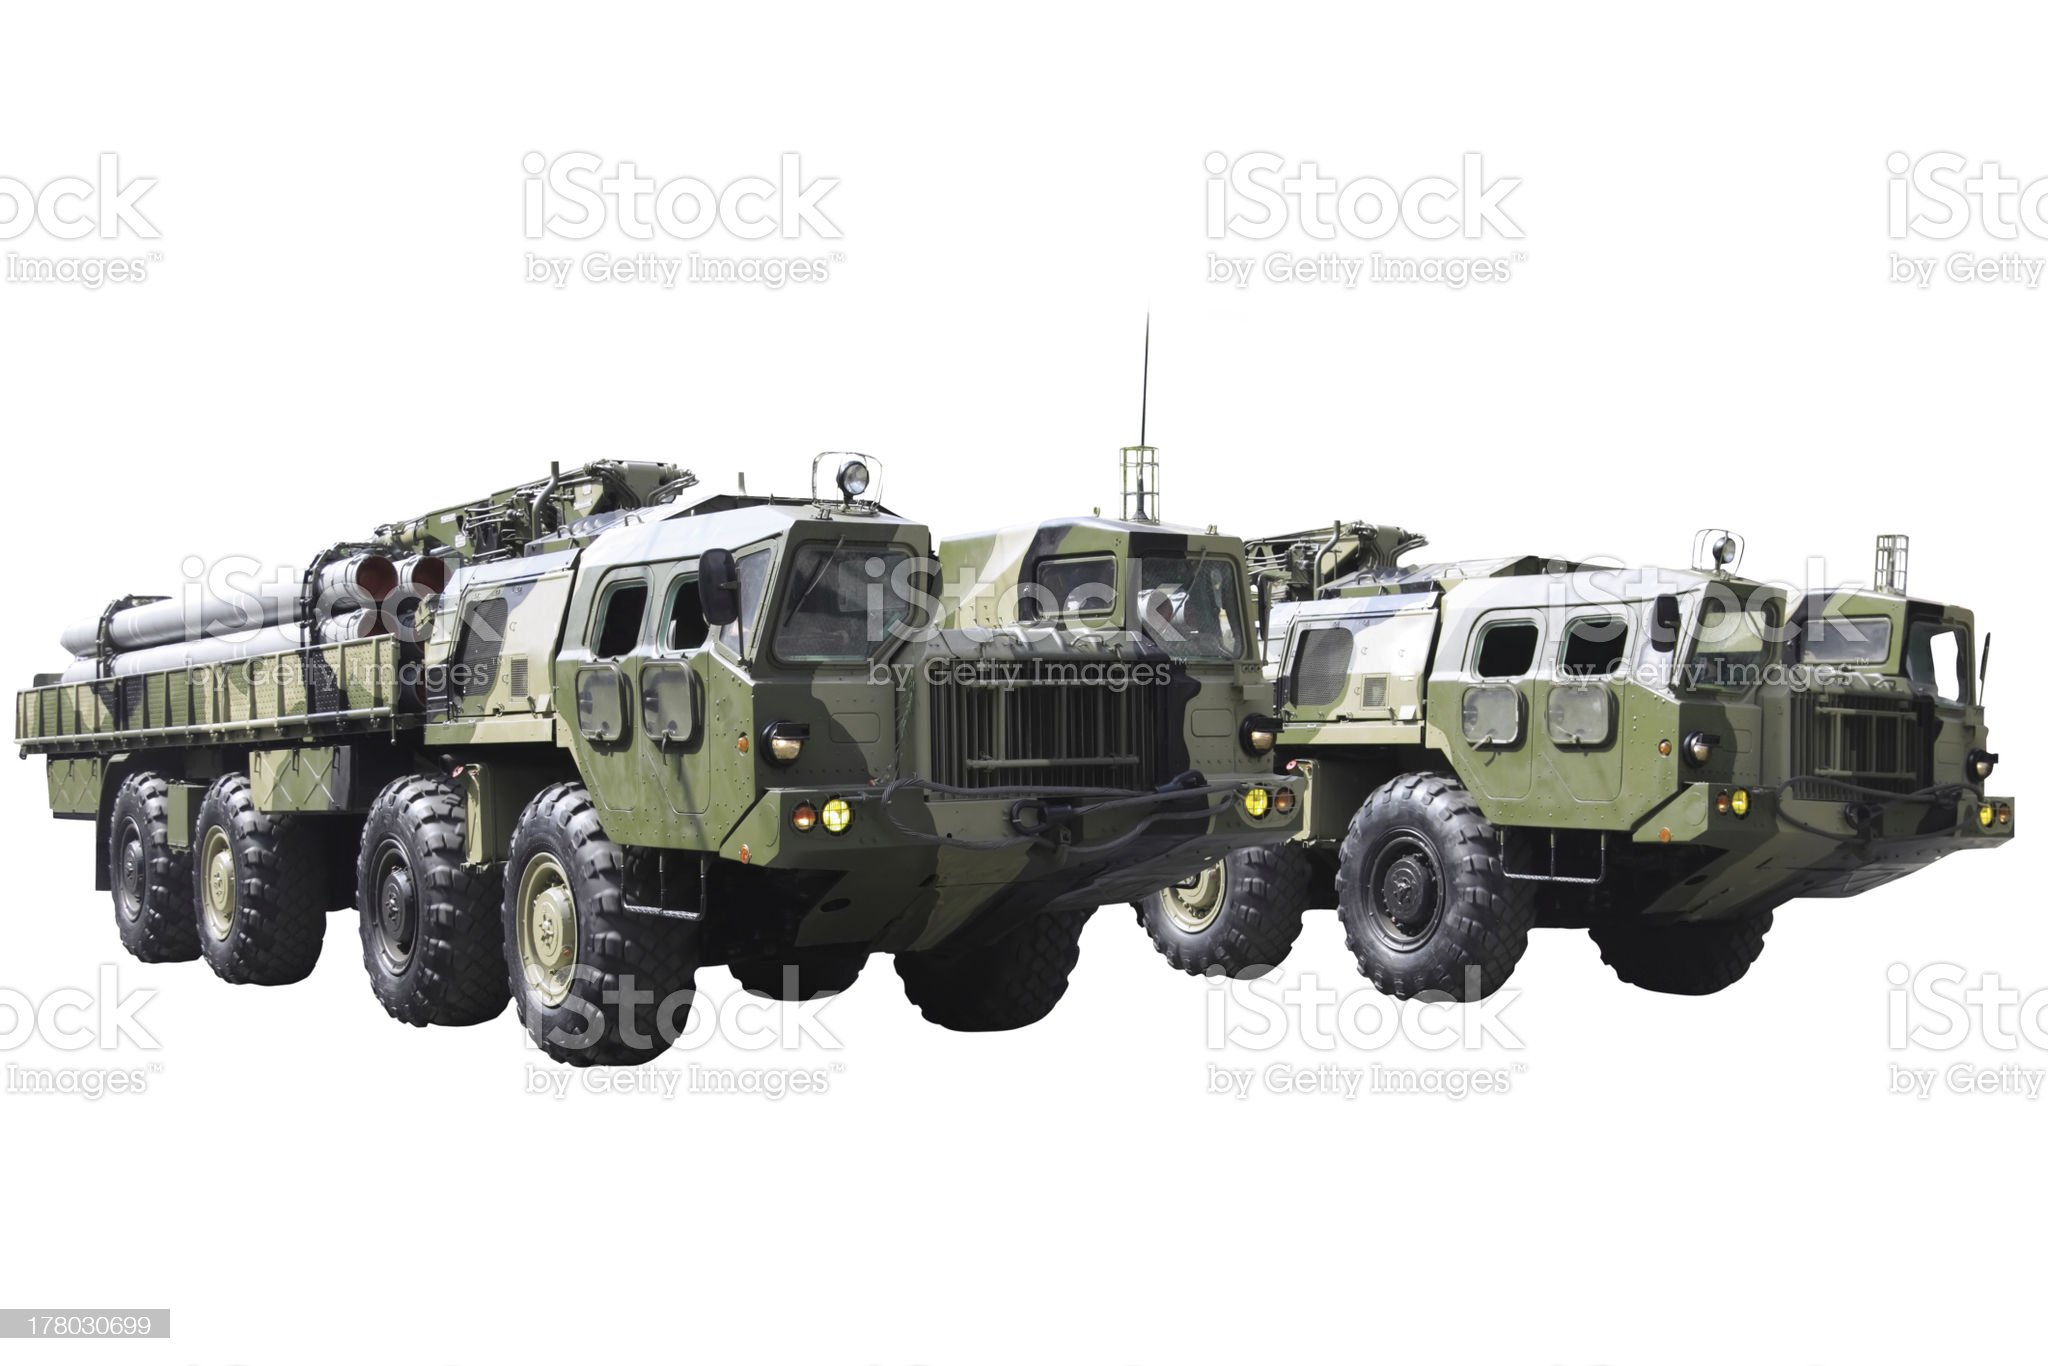 Military technics. Isolated royalty-free stock photo